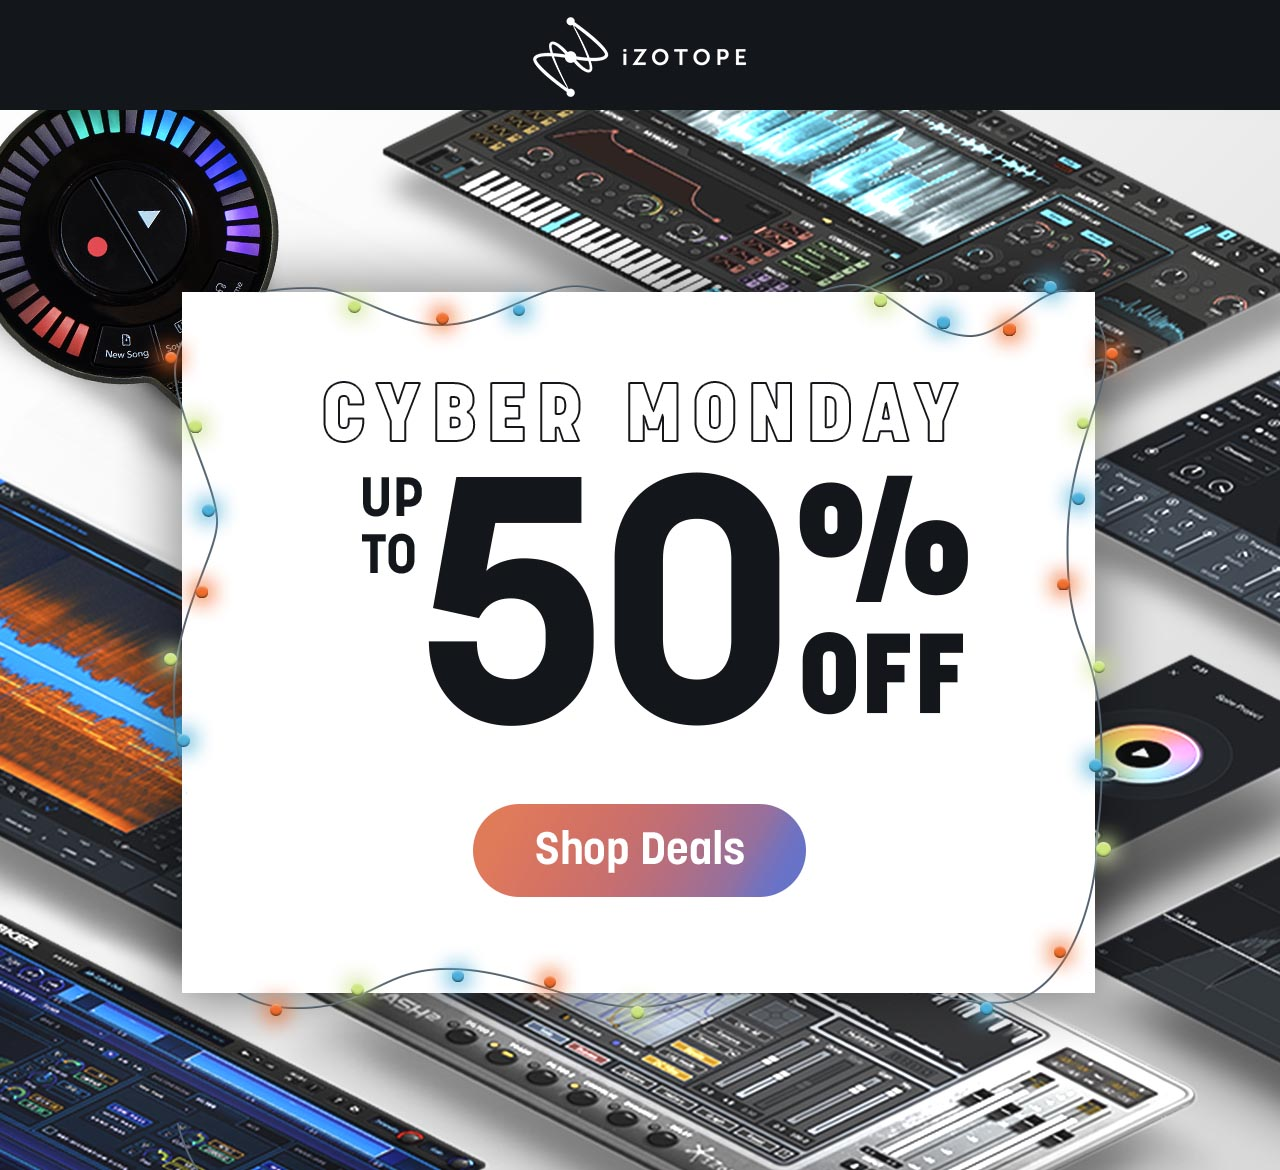 CYBER MONDAY - UP TO 50% OFF - Shop Deals